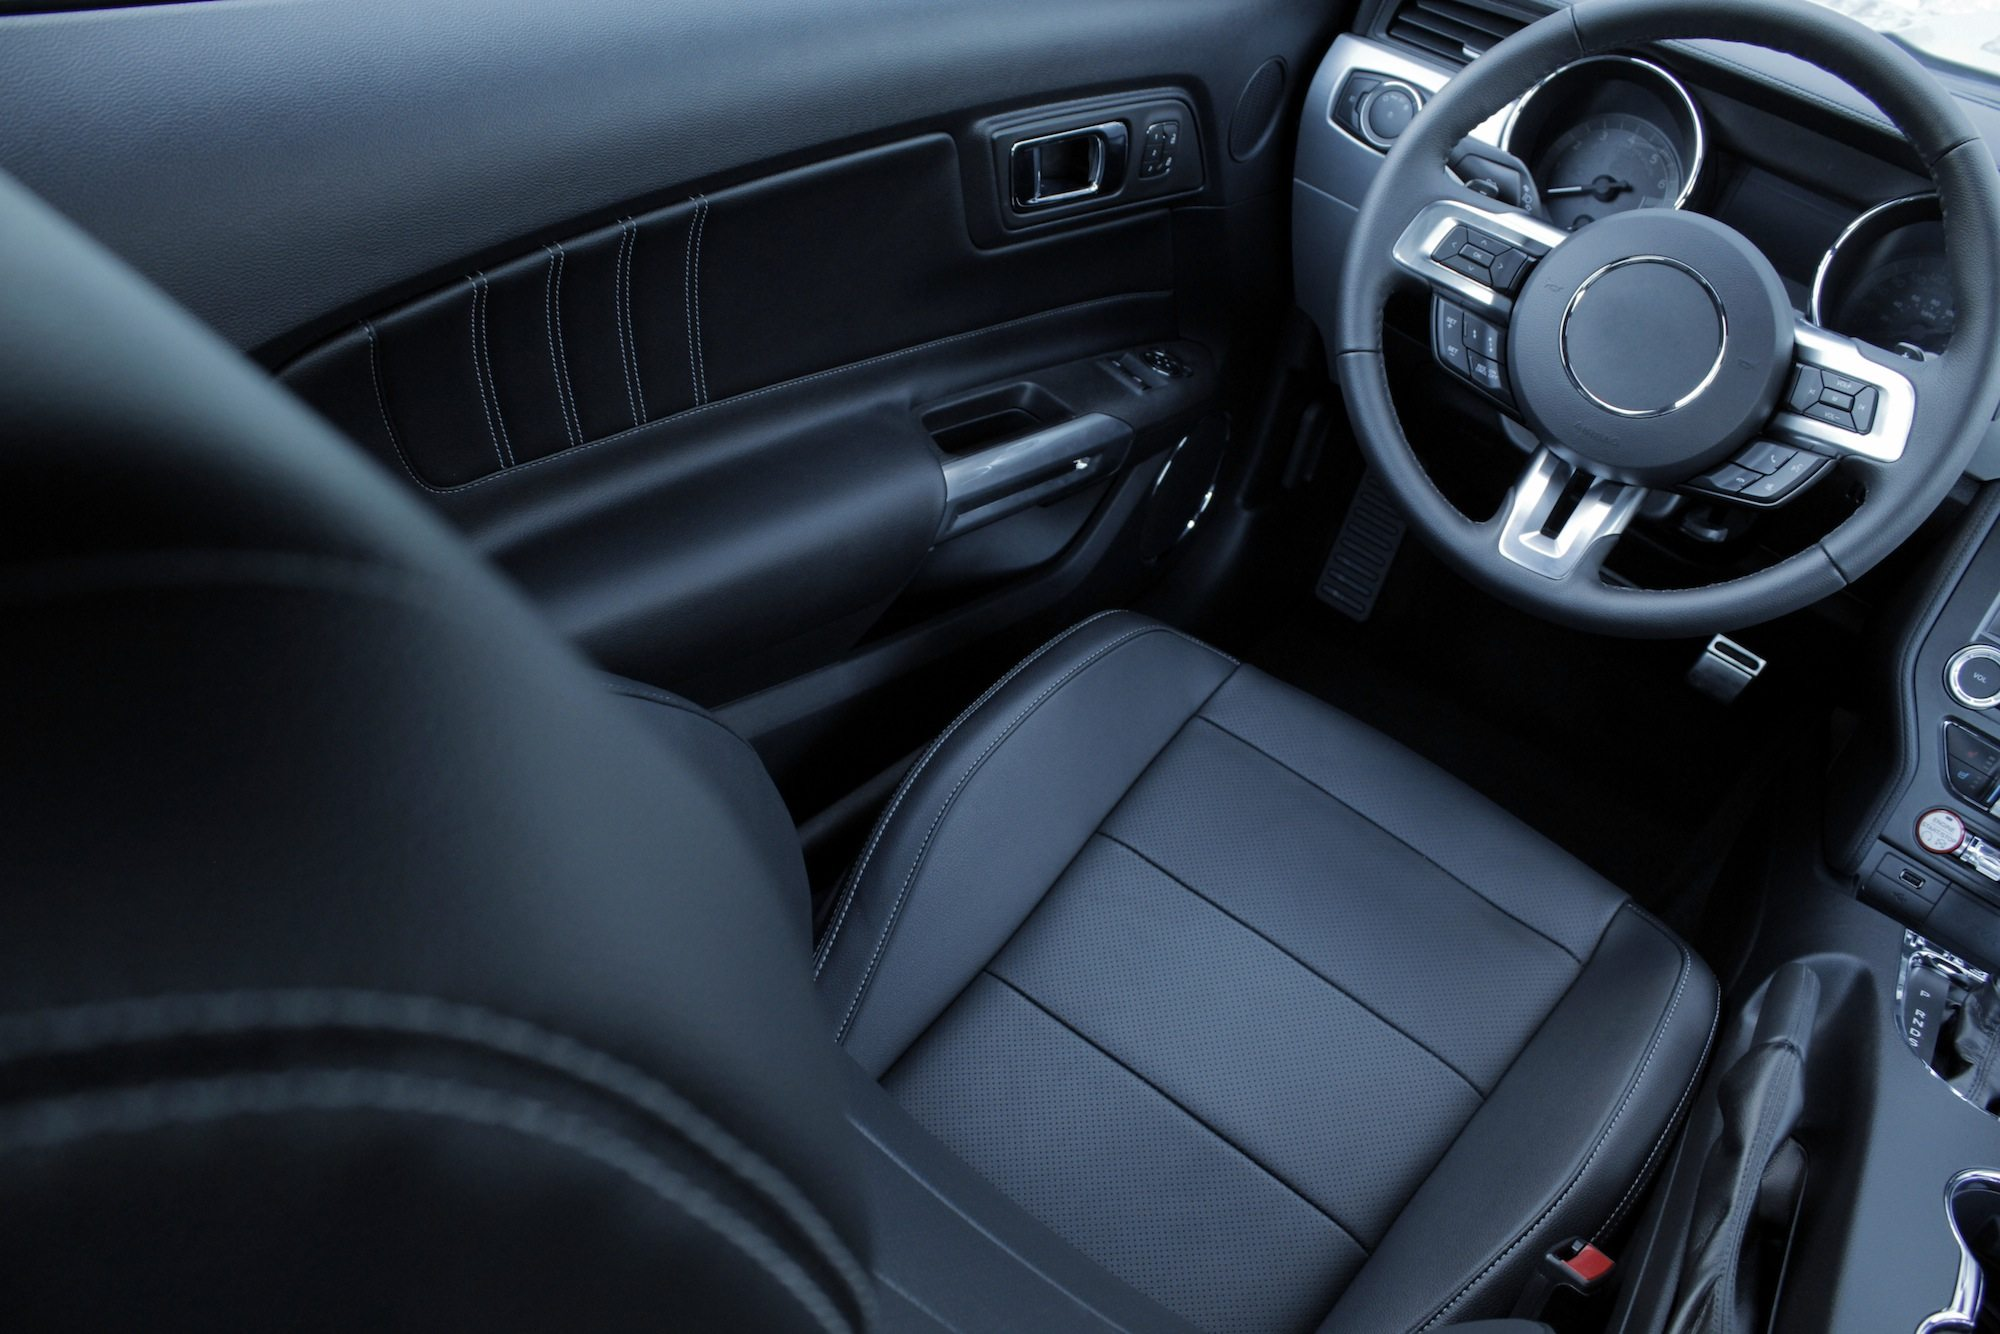 multiple remarkable services of view auto trends interior mobile detailing cleaning vital